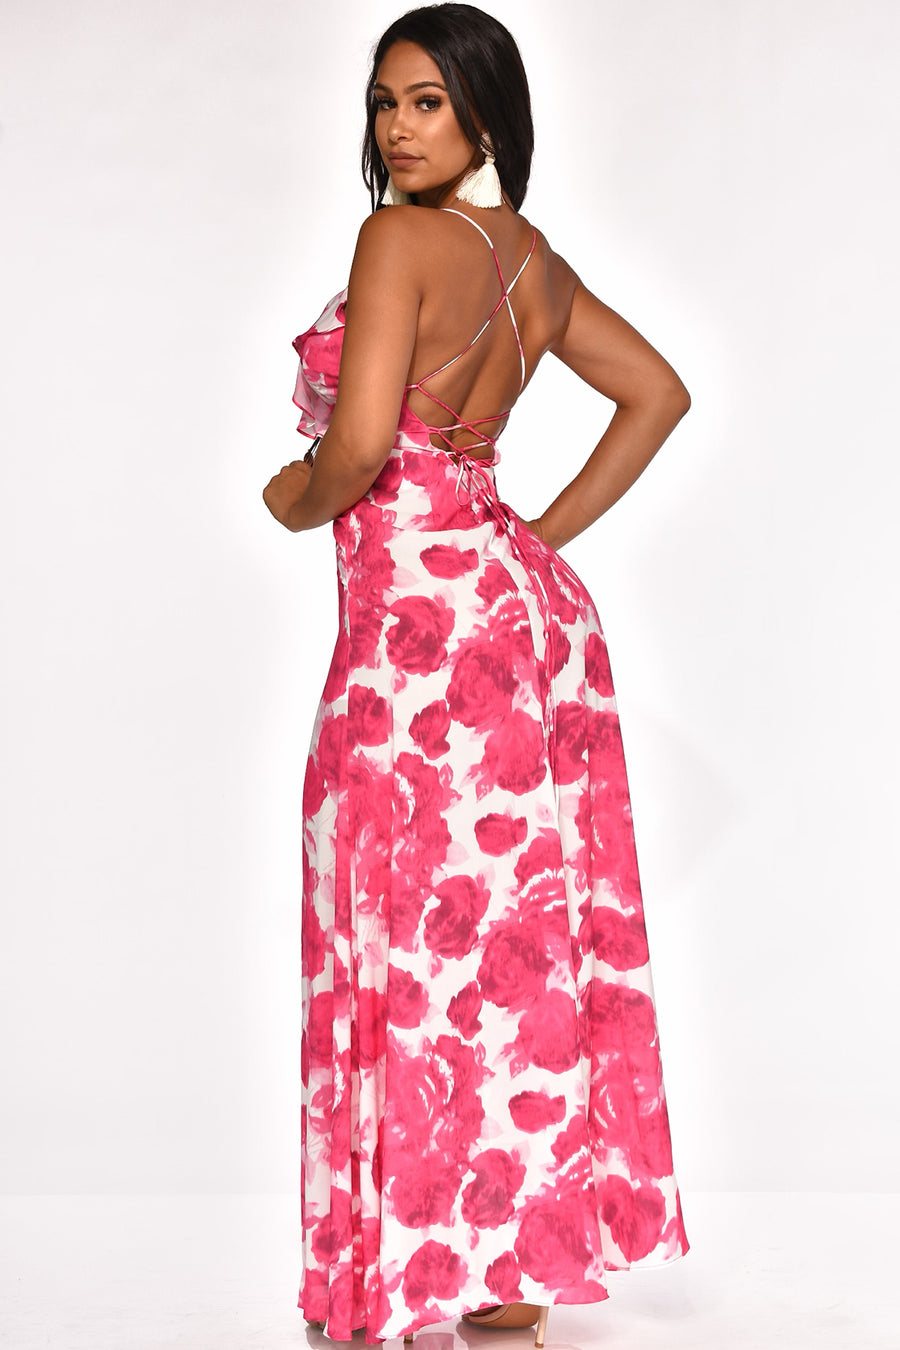 HOPELESSLY IN LOVE MAXI DRESS